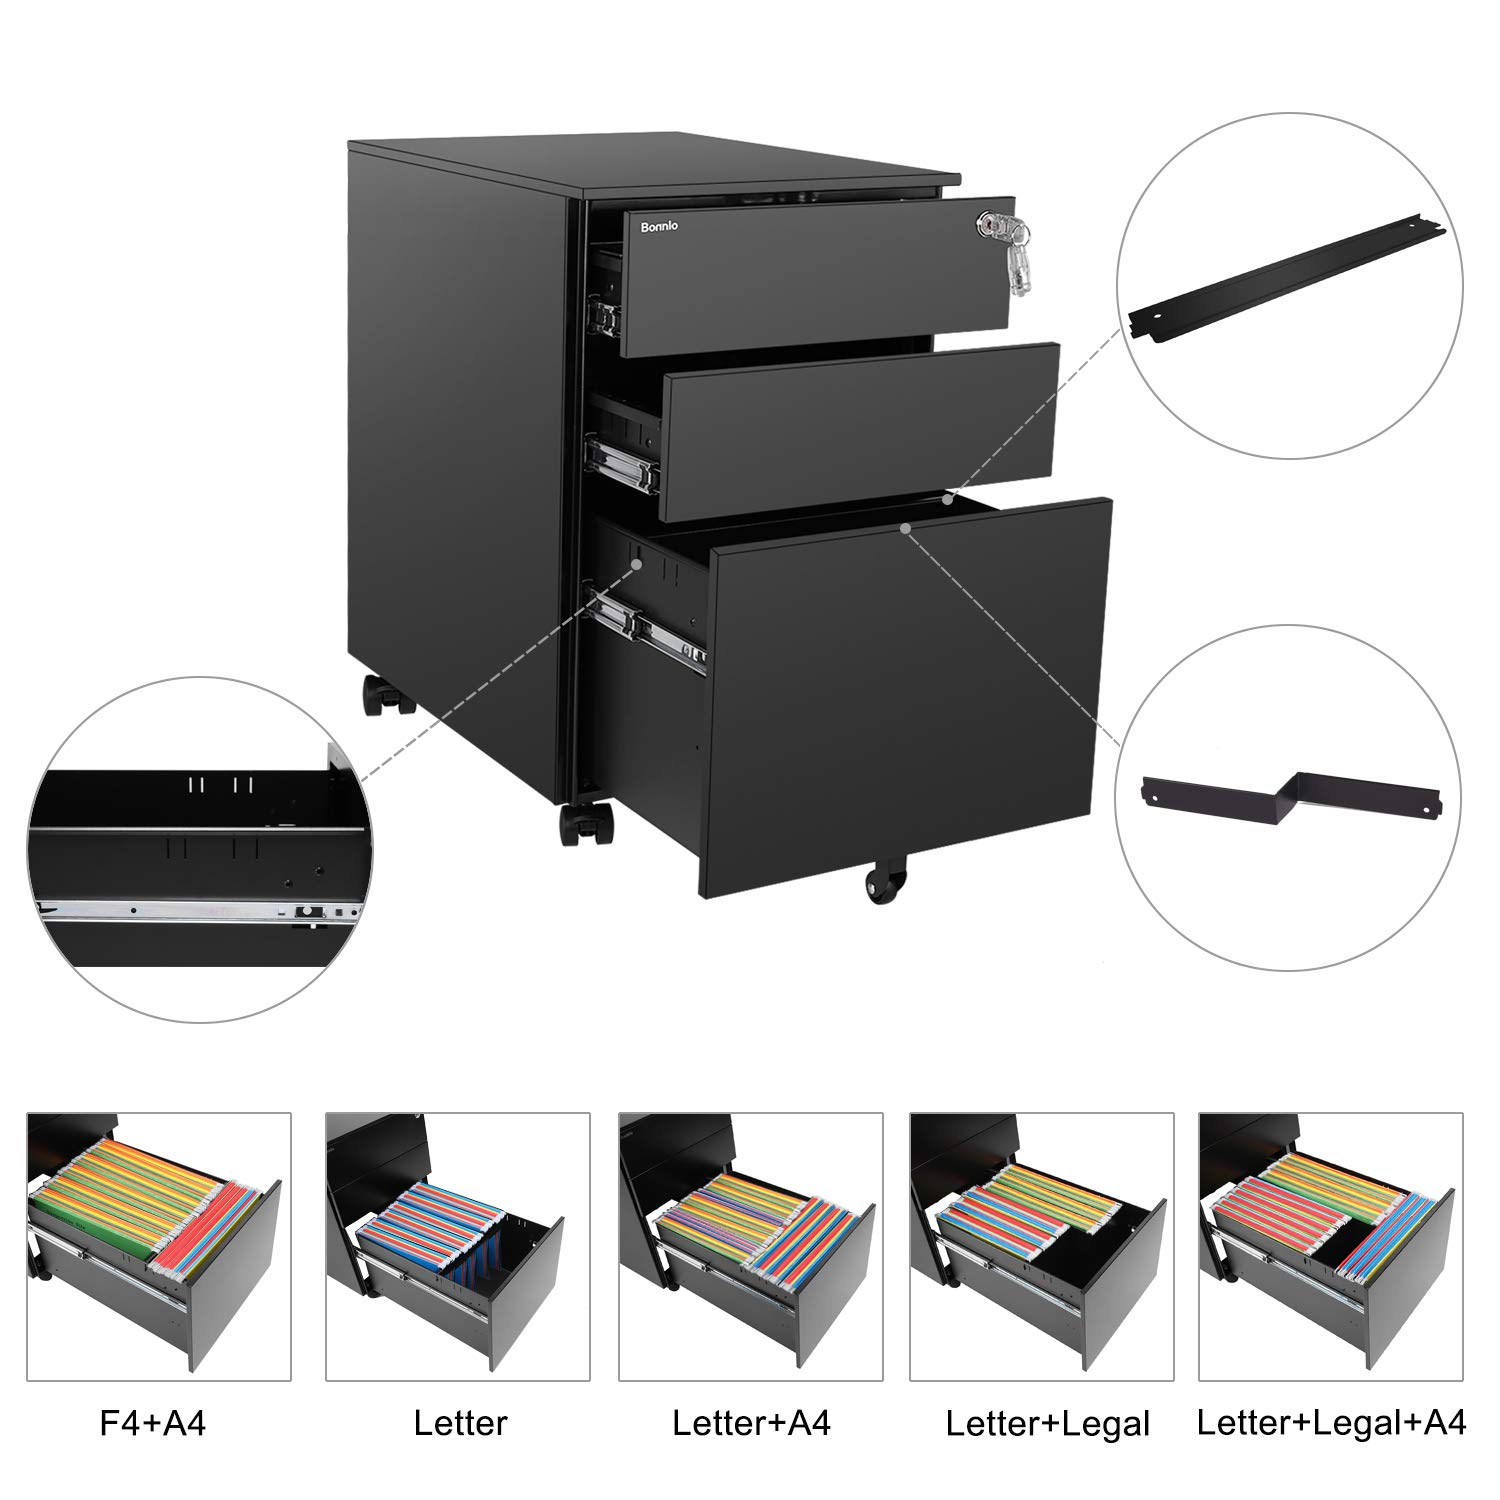 Bonnlo Mobile File Cabinet with Lock, 3 Smooth Gliding Drawers and Wheels for Home Office, Includes 25-Pack Hanging File Folders, Fully Assembled, Black by Bonnlo (Image #4)